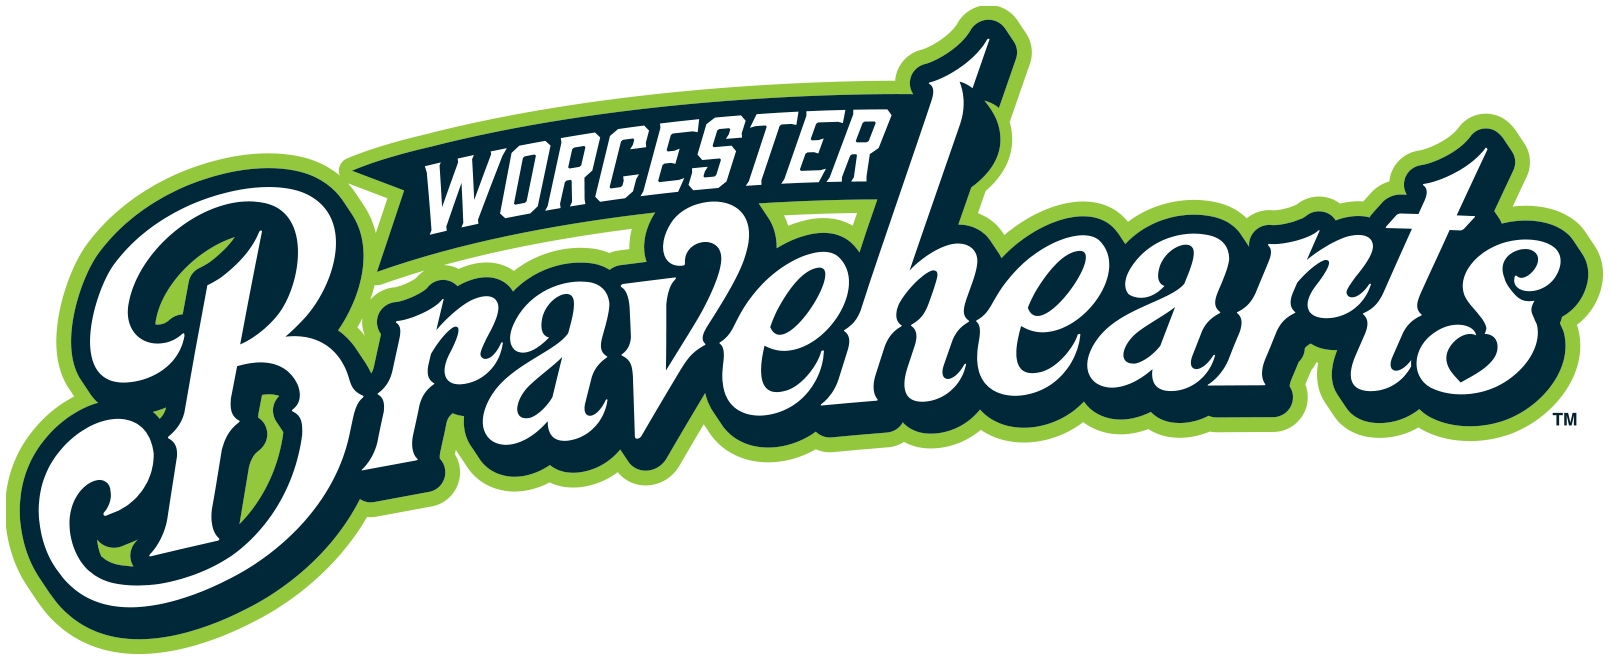 logo_Featured_Bravehearts.png